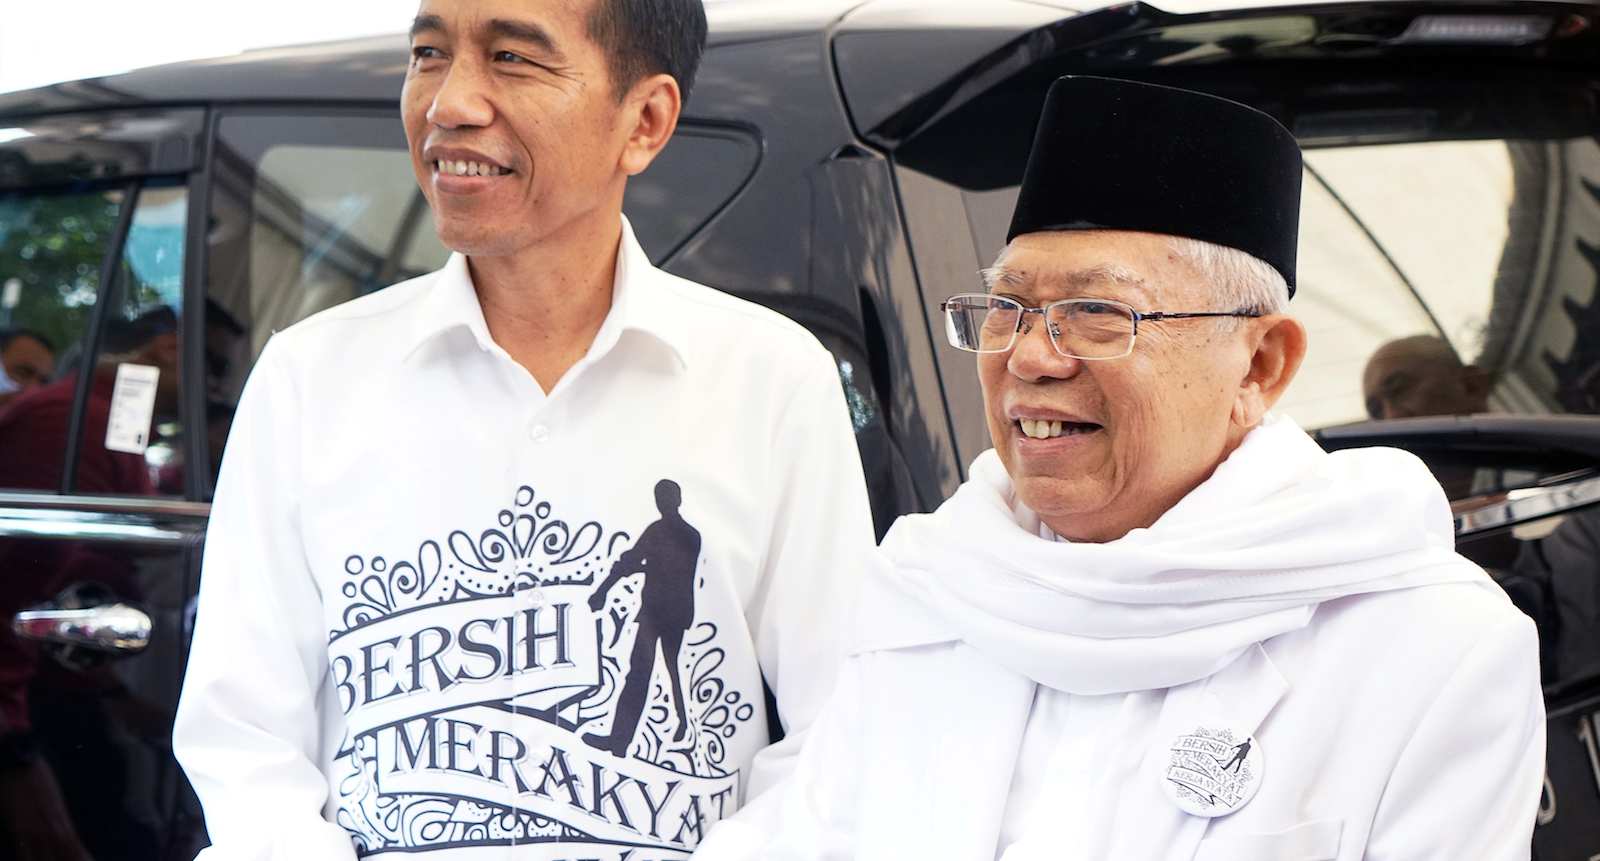 Joko Widodo and Ma'ruf Amin (Photo: Dimes Ardian via Getty)